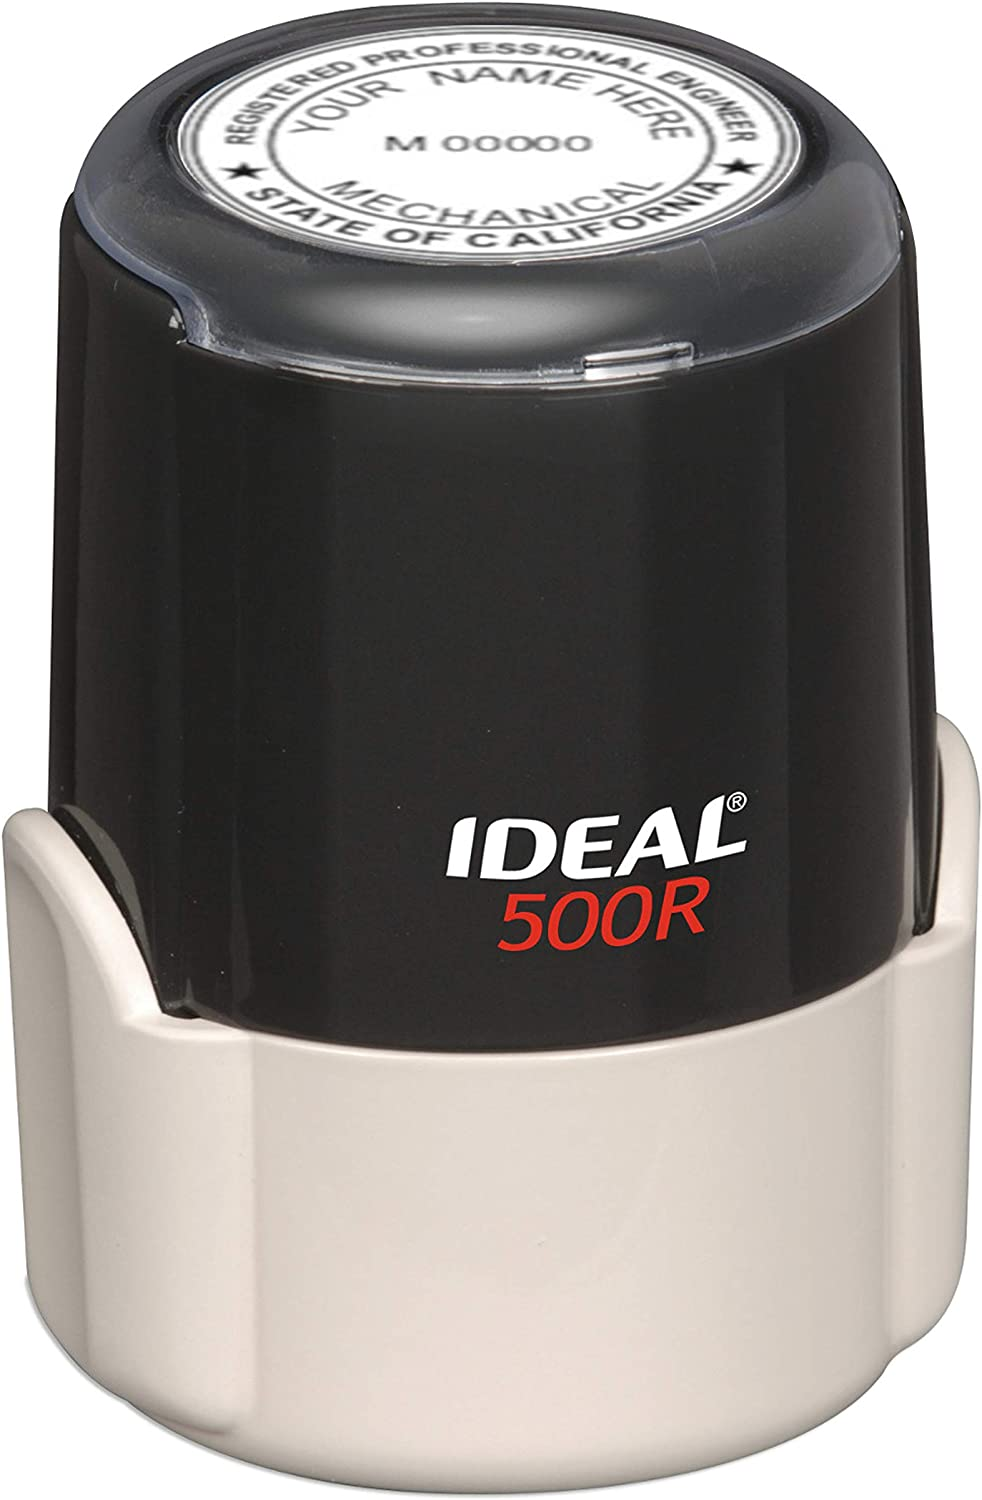 HUBCO Ideal 500R Professional Engineer Seal Stamp (1.75-inch Image Size, Black) | California